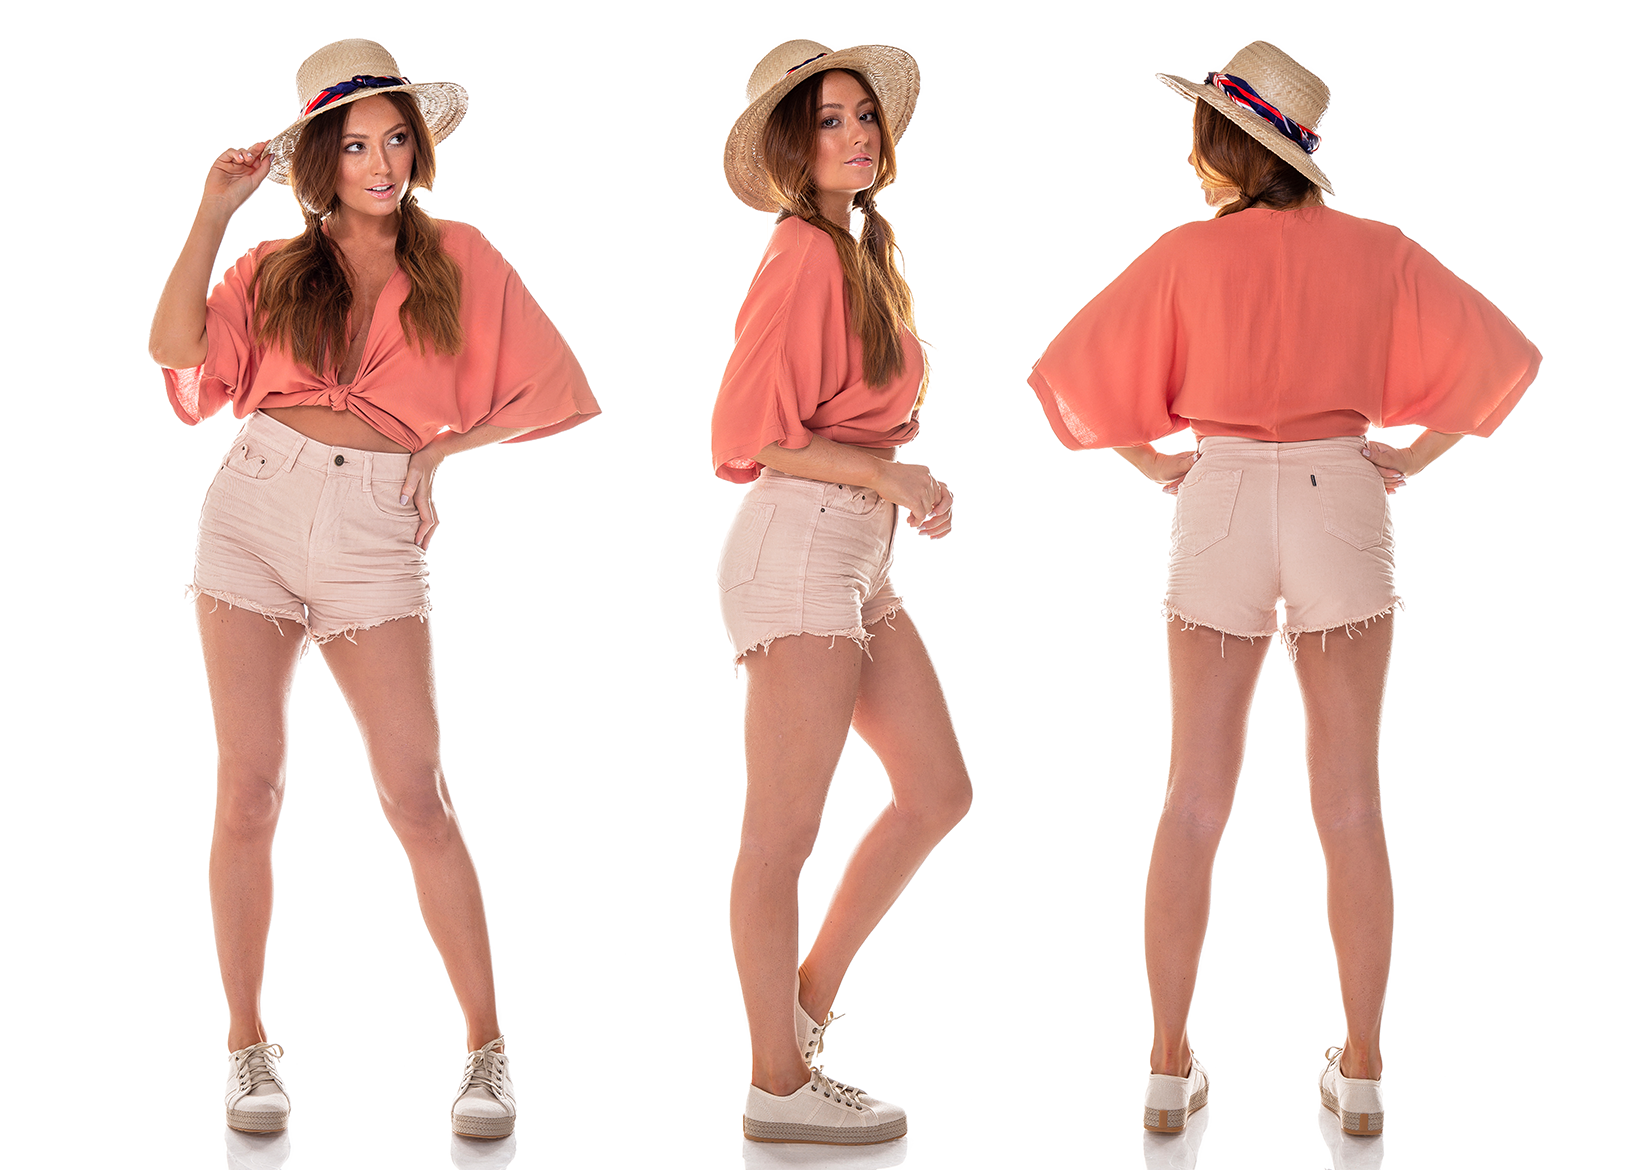 dz6215 11 natural shorts setentinha colors denim zero tripla